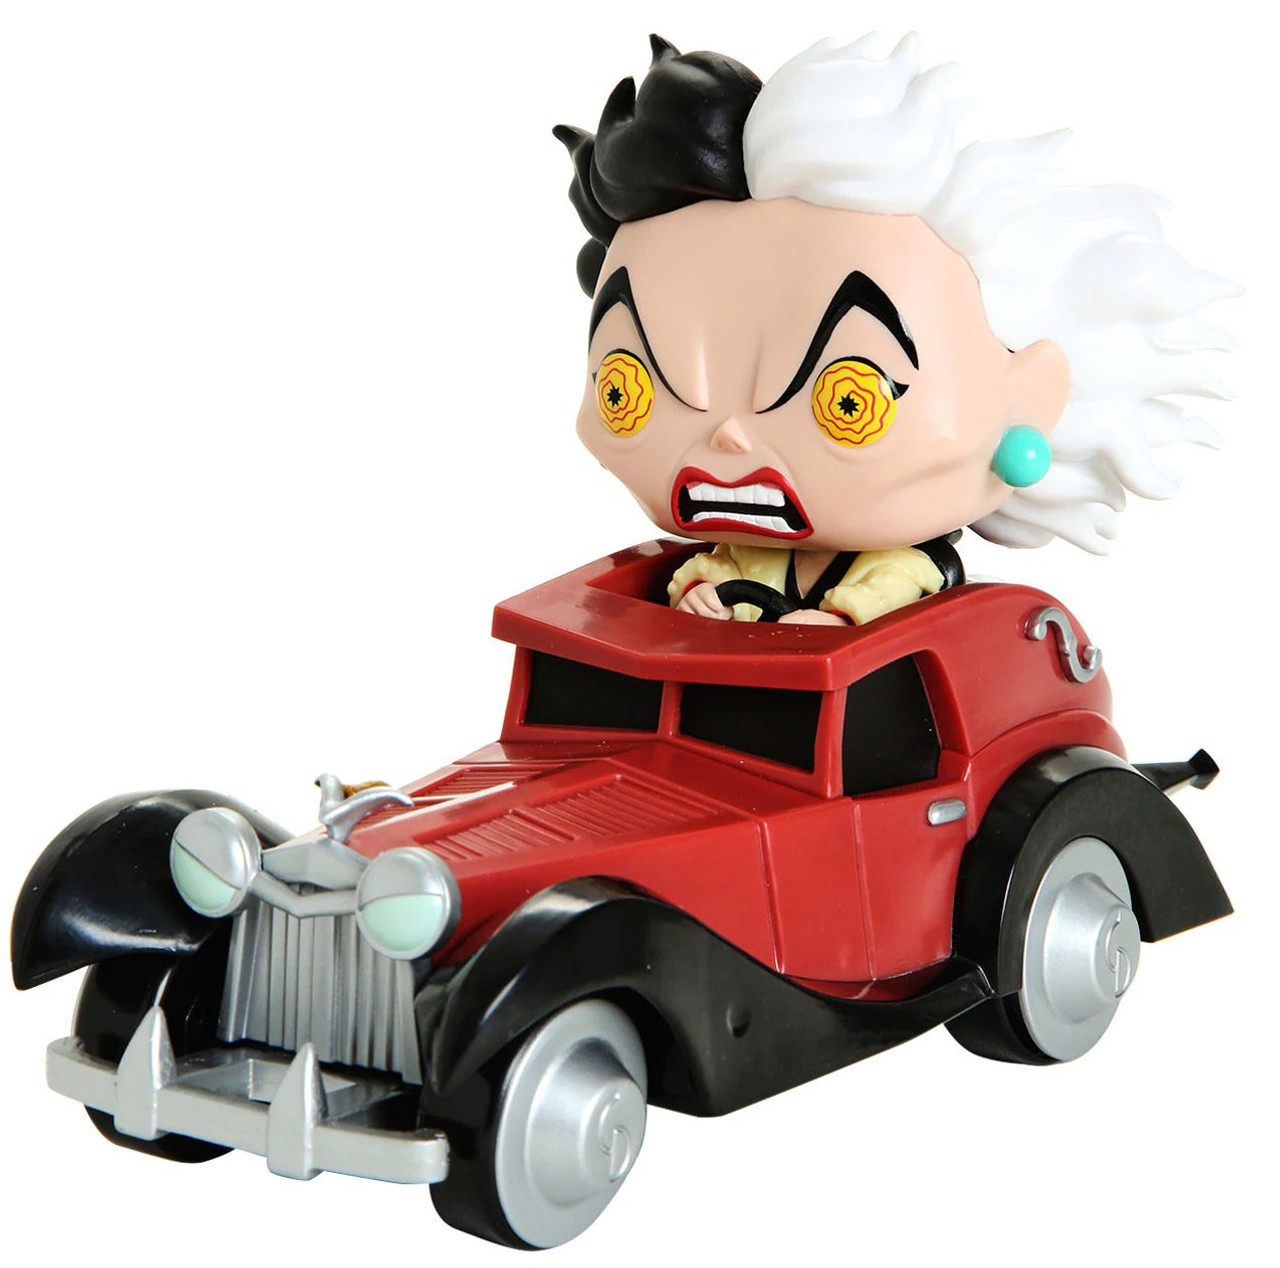 Funko Disney 101 Dalmatians Funko Pop Rides Cruella In Car Exclusive